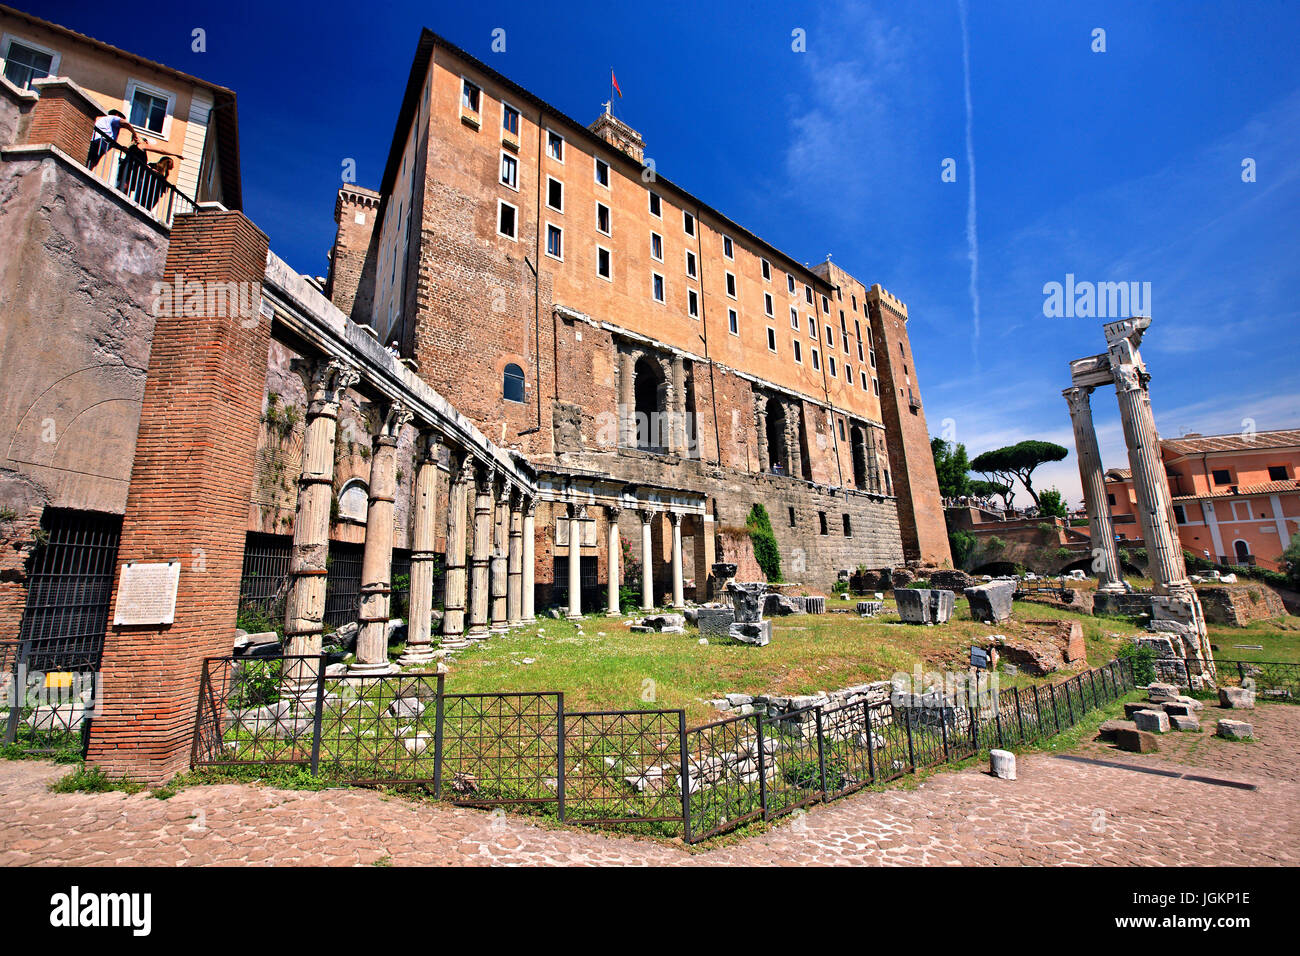 The Portico of the Harmonious Gods and the Temple of Vespasian and Titus (back) on the foot of the Capitoline hill, - Stock Image